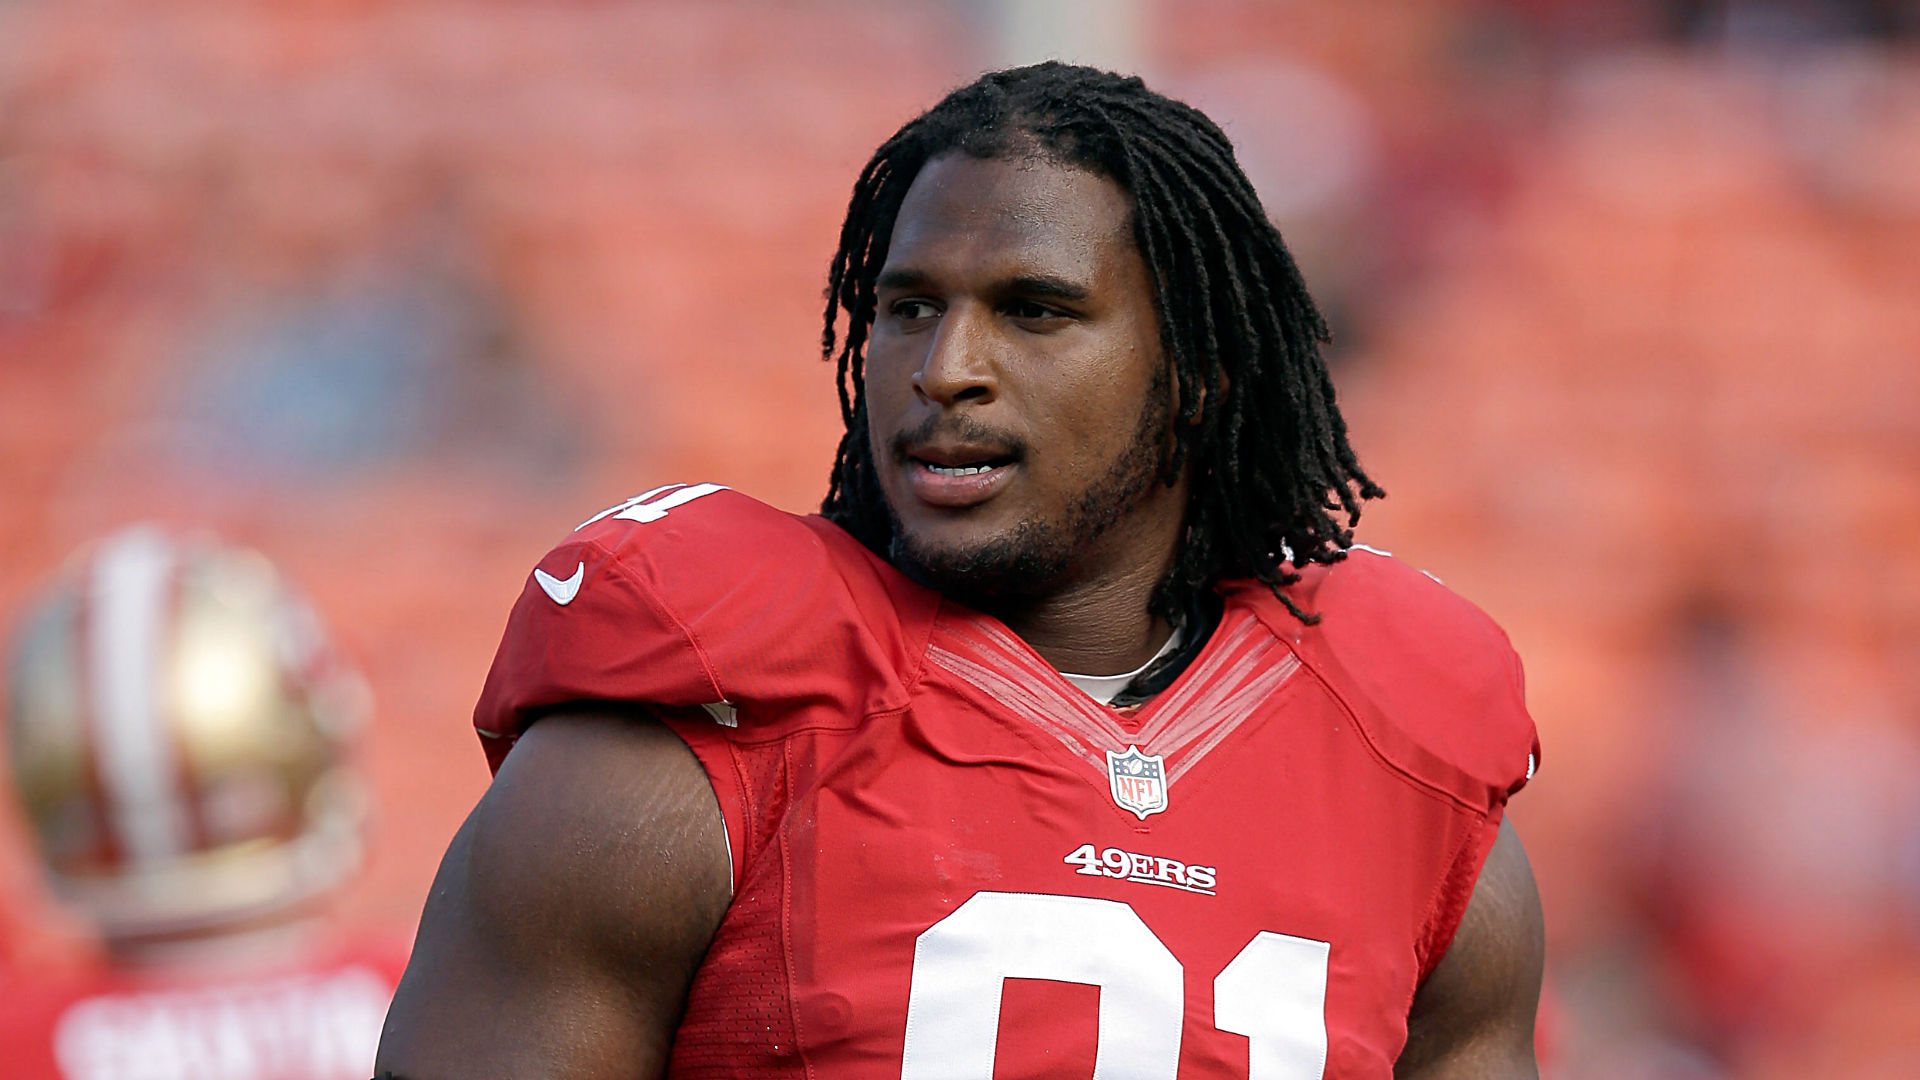 NFL can't give Ray McDonald another chance to abuse women and play